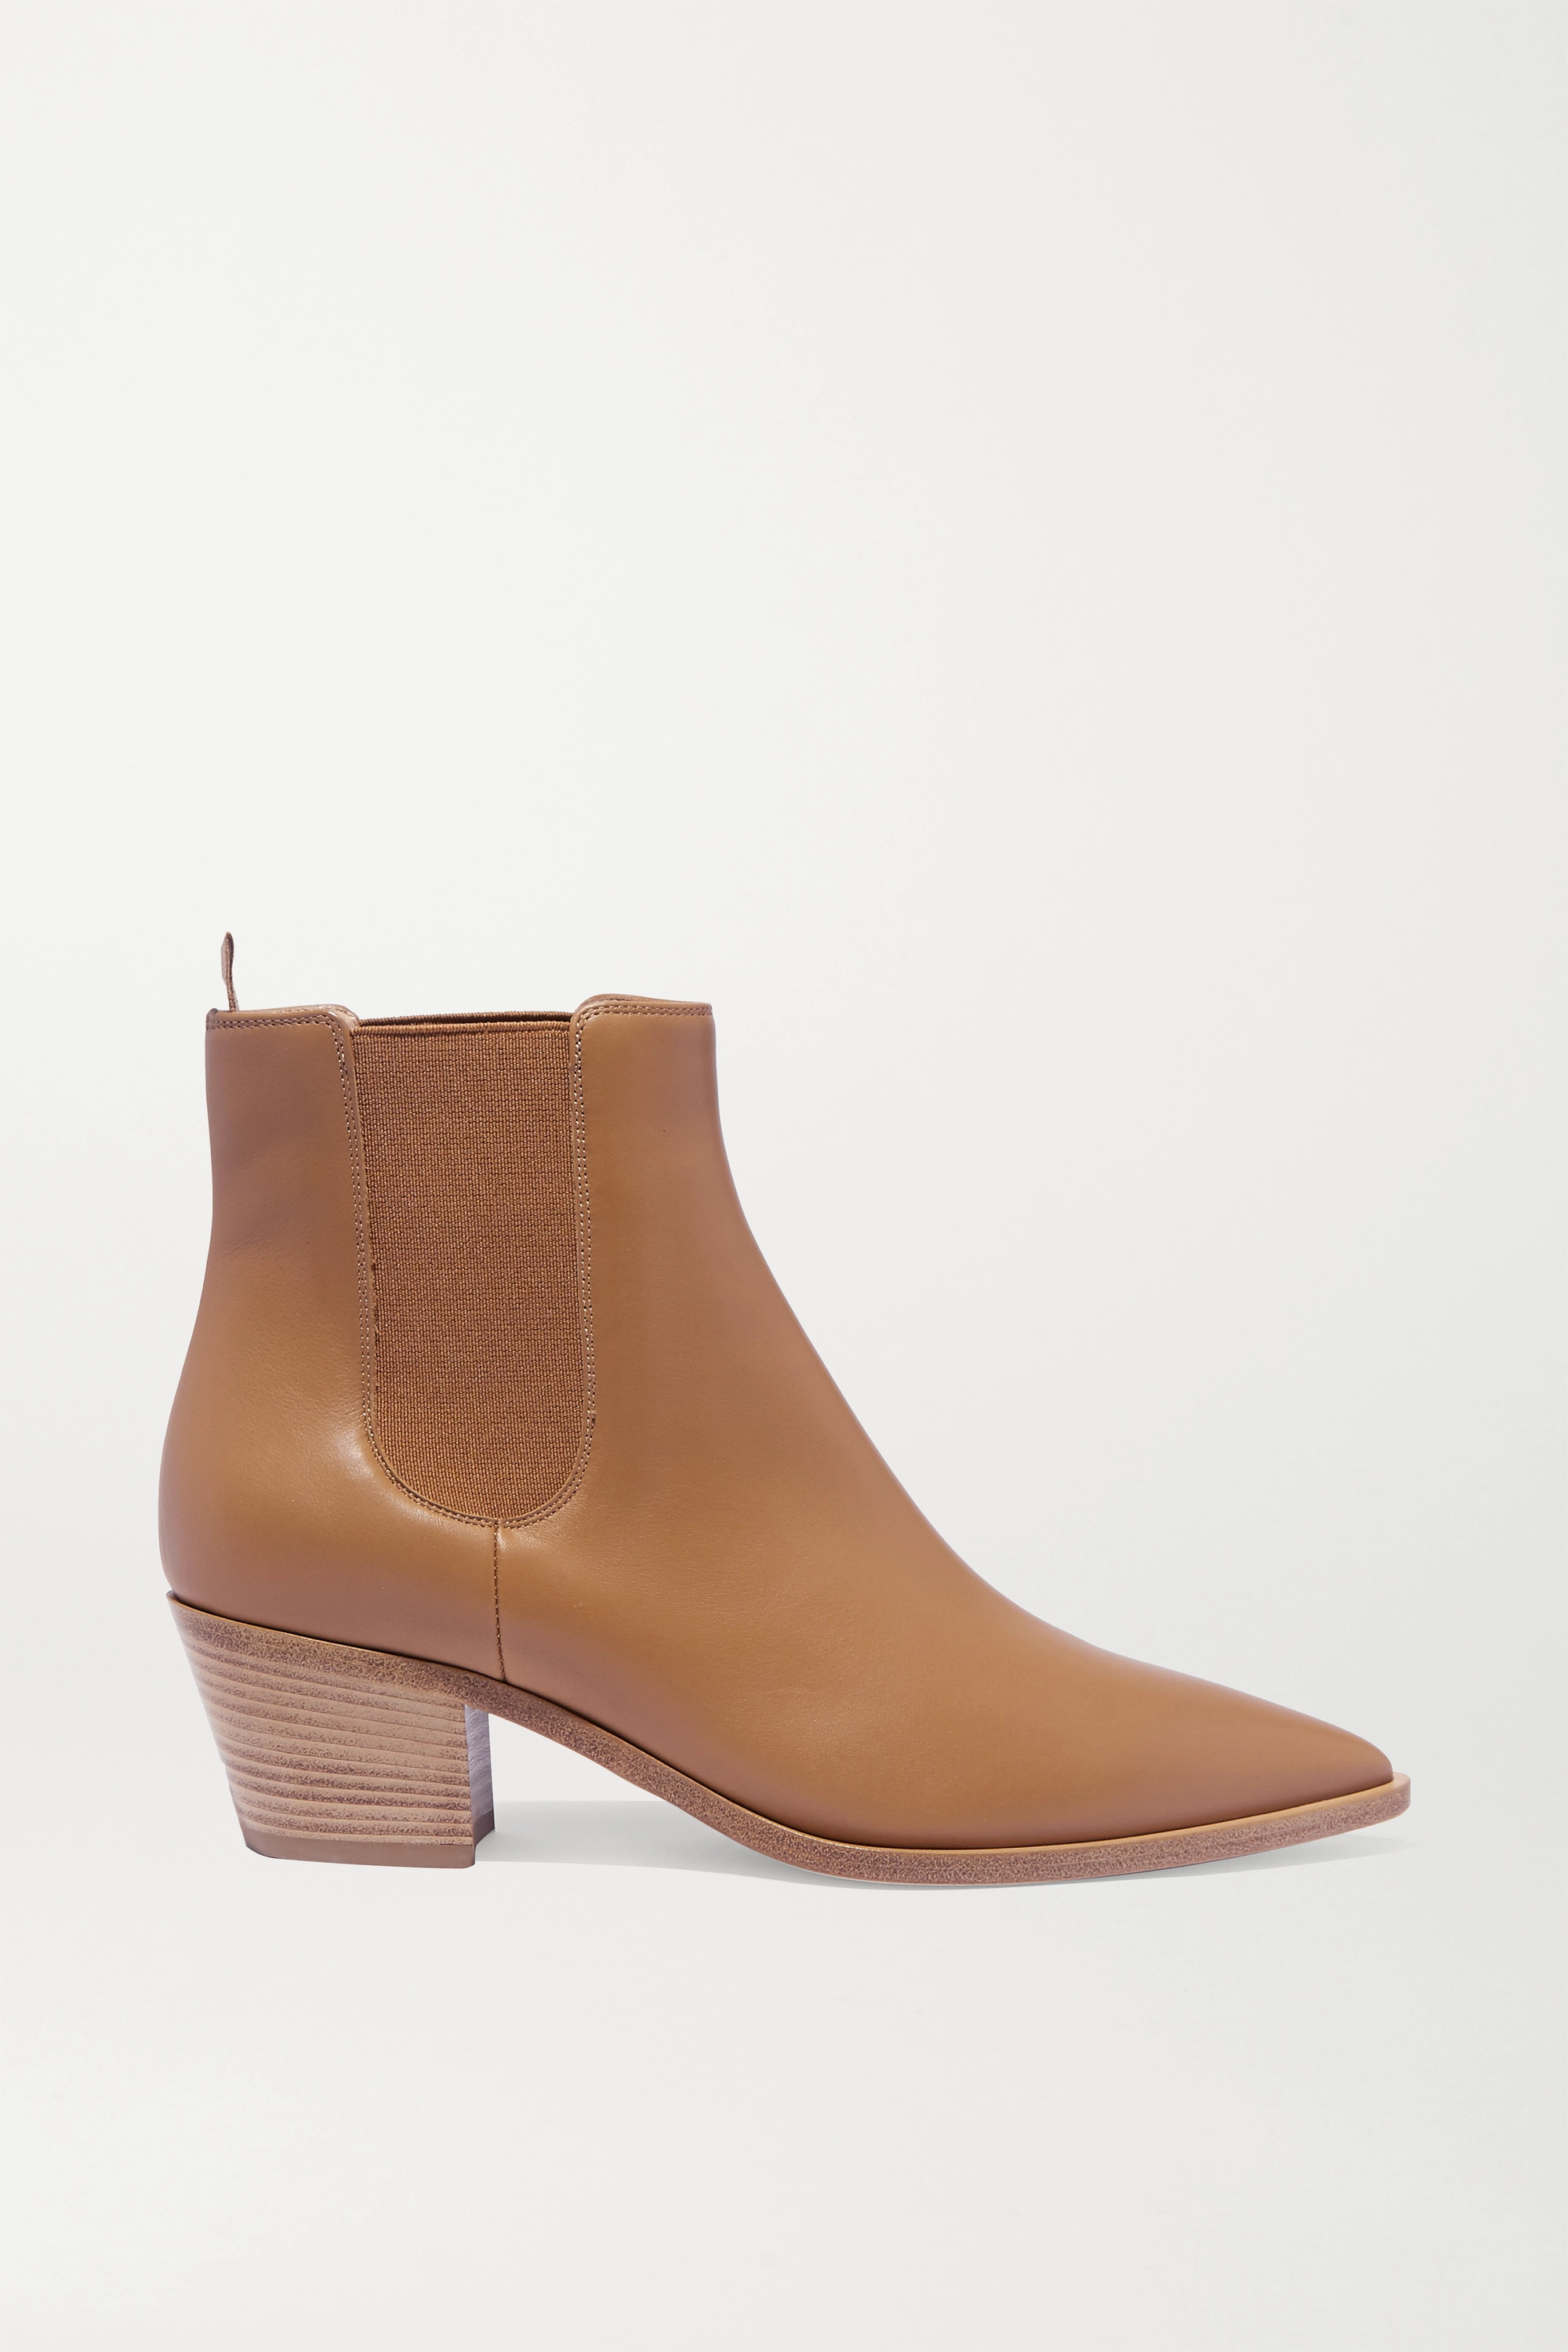 Gianvito Rossi 45 leather Chelsea boots